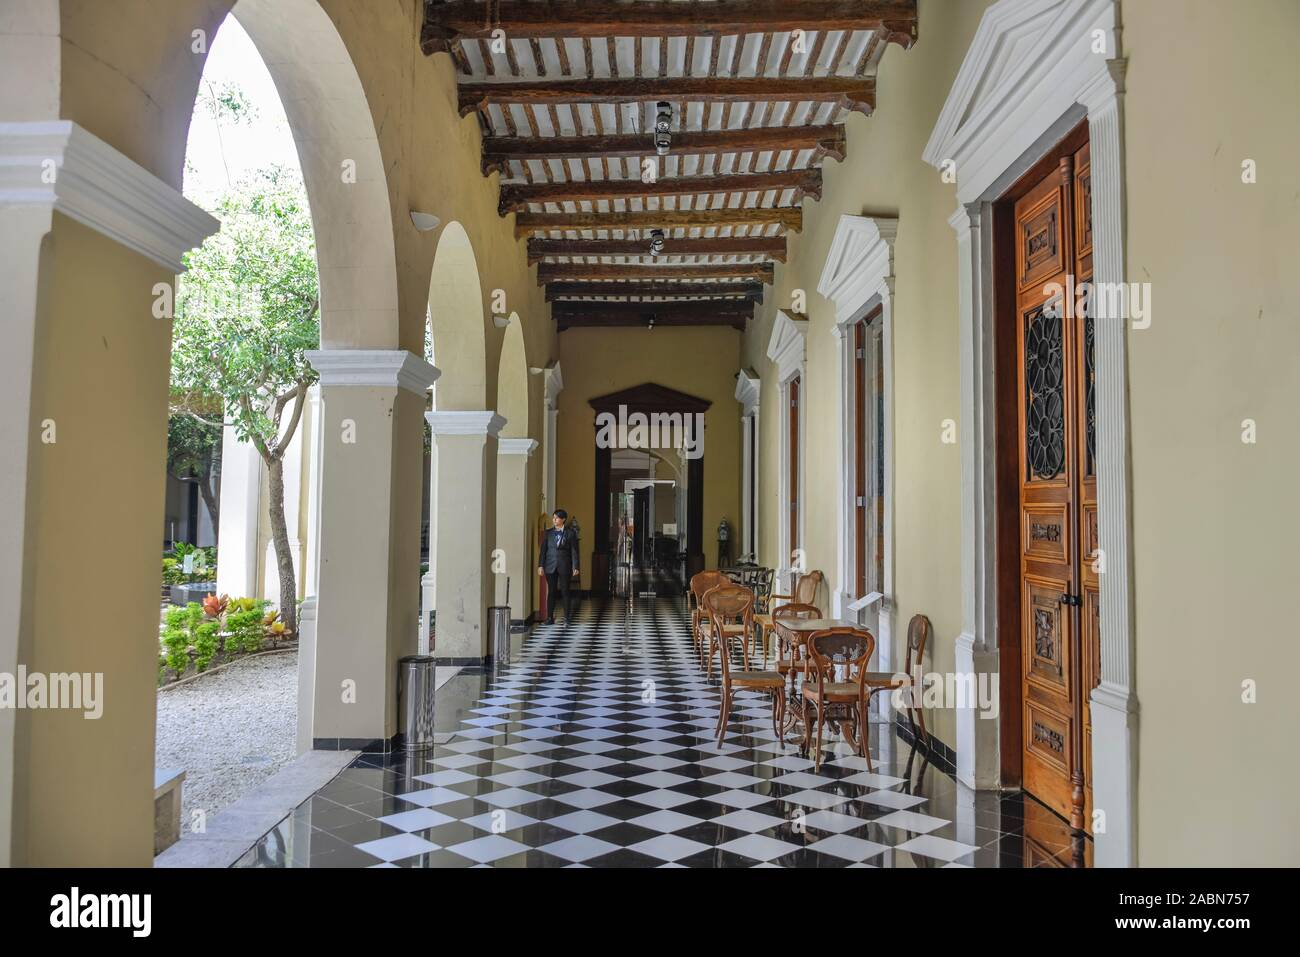 Bogengang, Innenhof, Casa de Montejo, Plaza de la Independencia, Merida, Yucatan, Mexiko Stock Photo